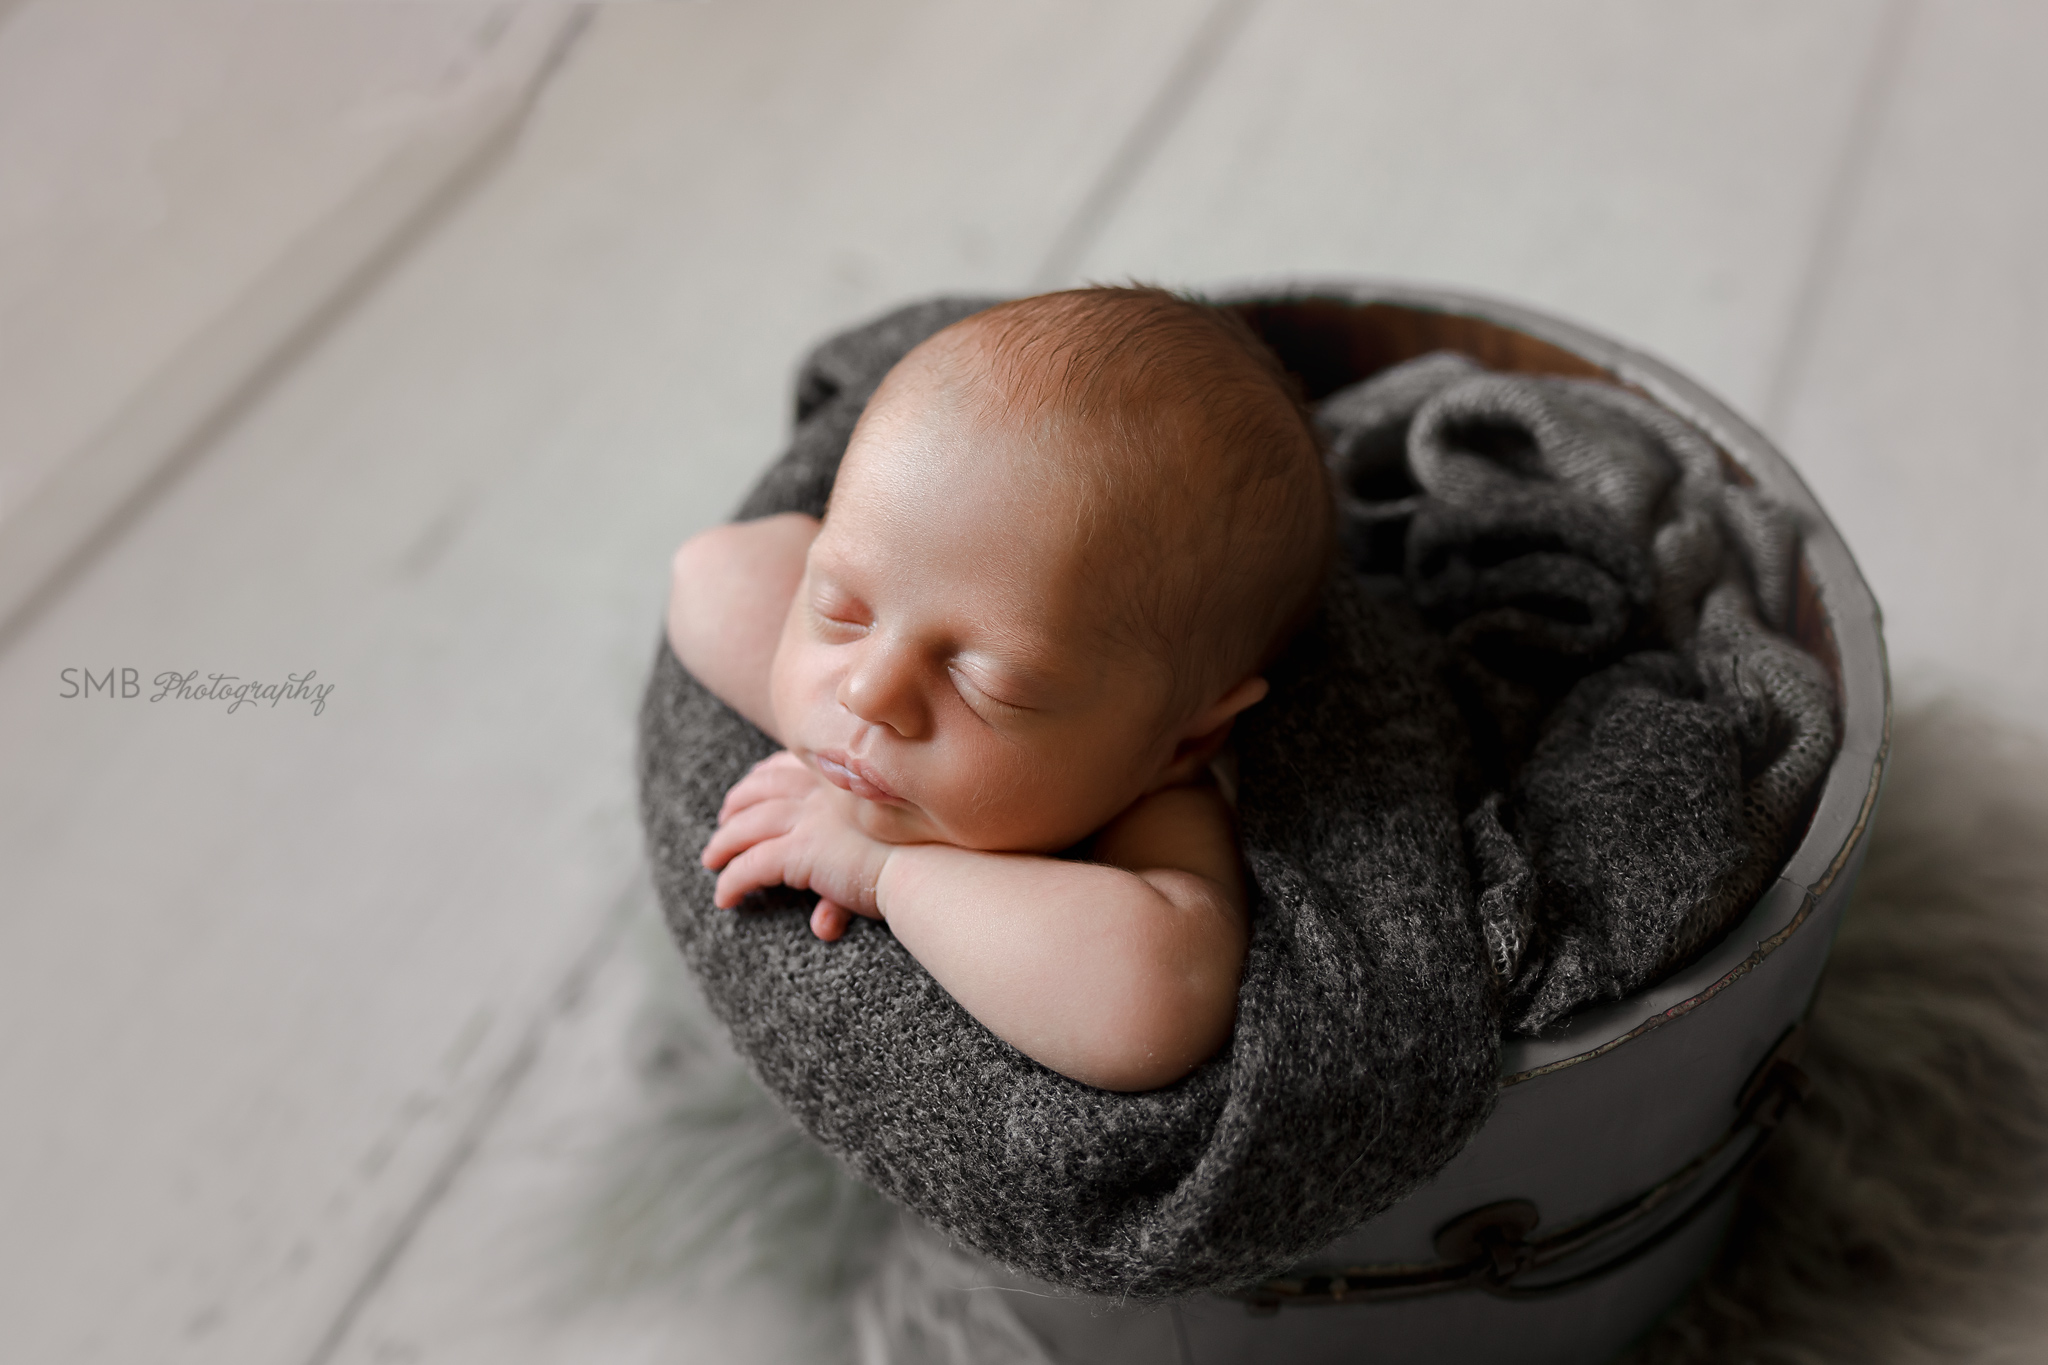 Profile portrait of new baby boy in bucket